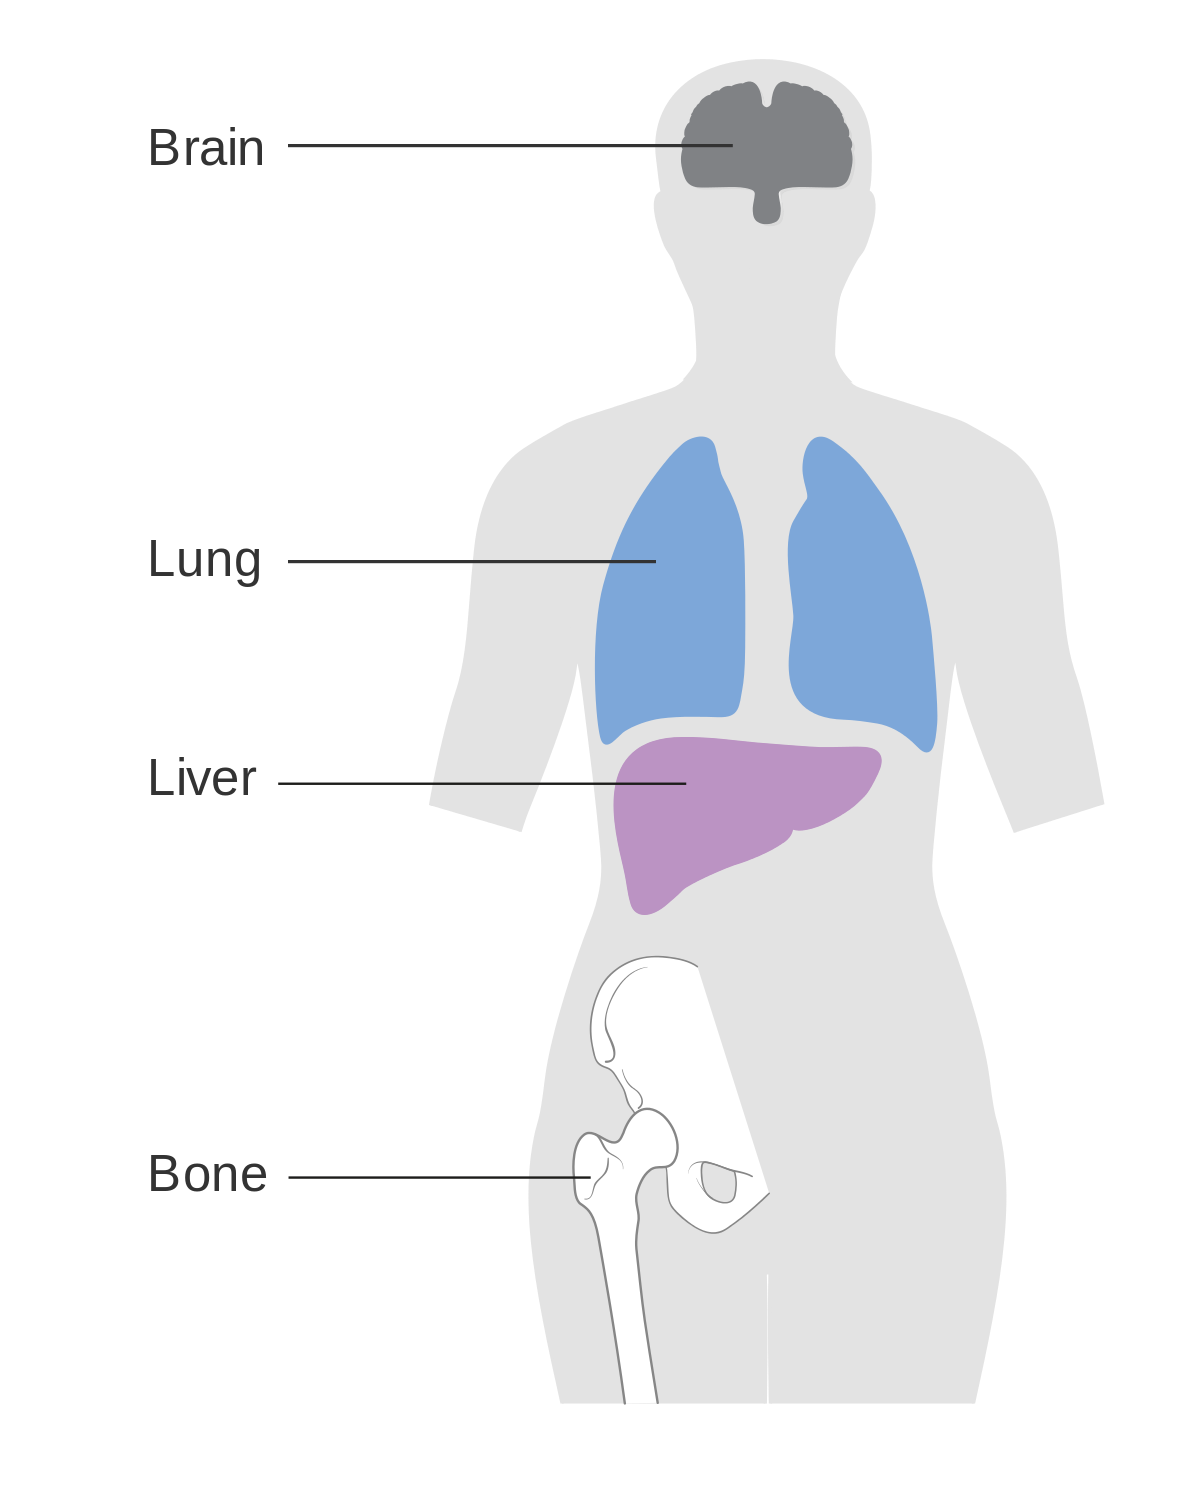 sarcoma cancer spread to lungs papillary lesion tongue